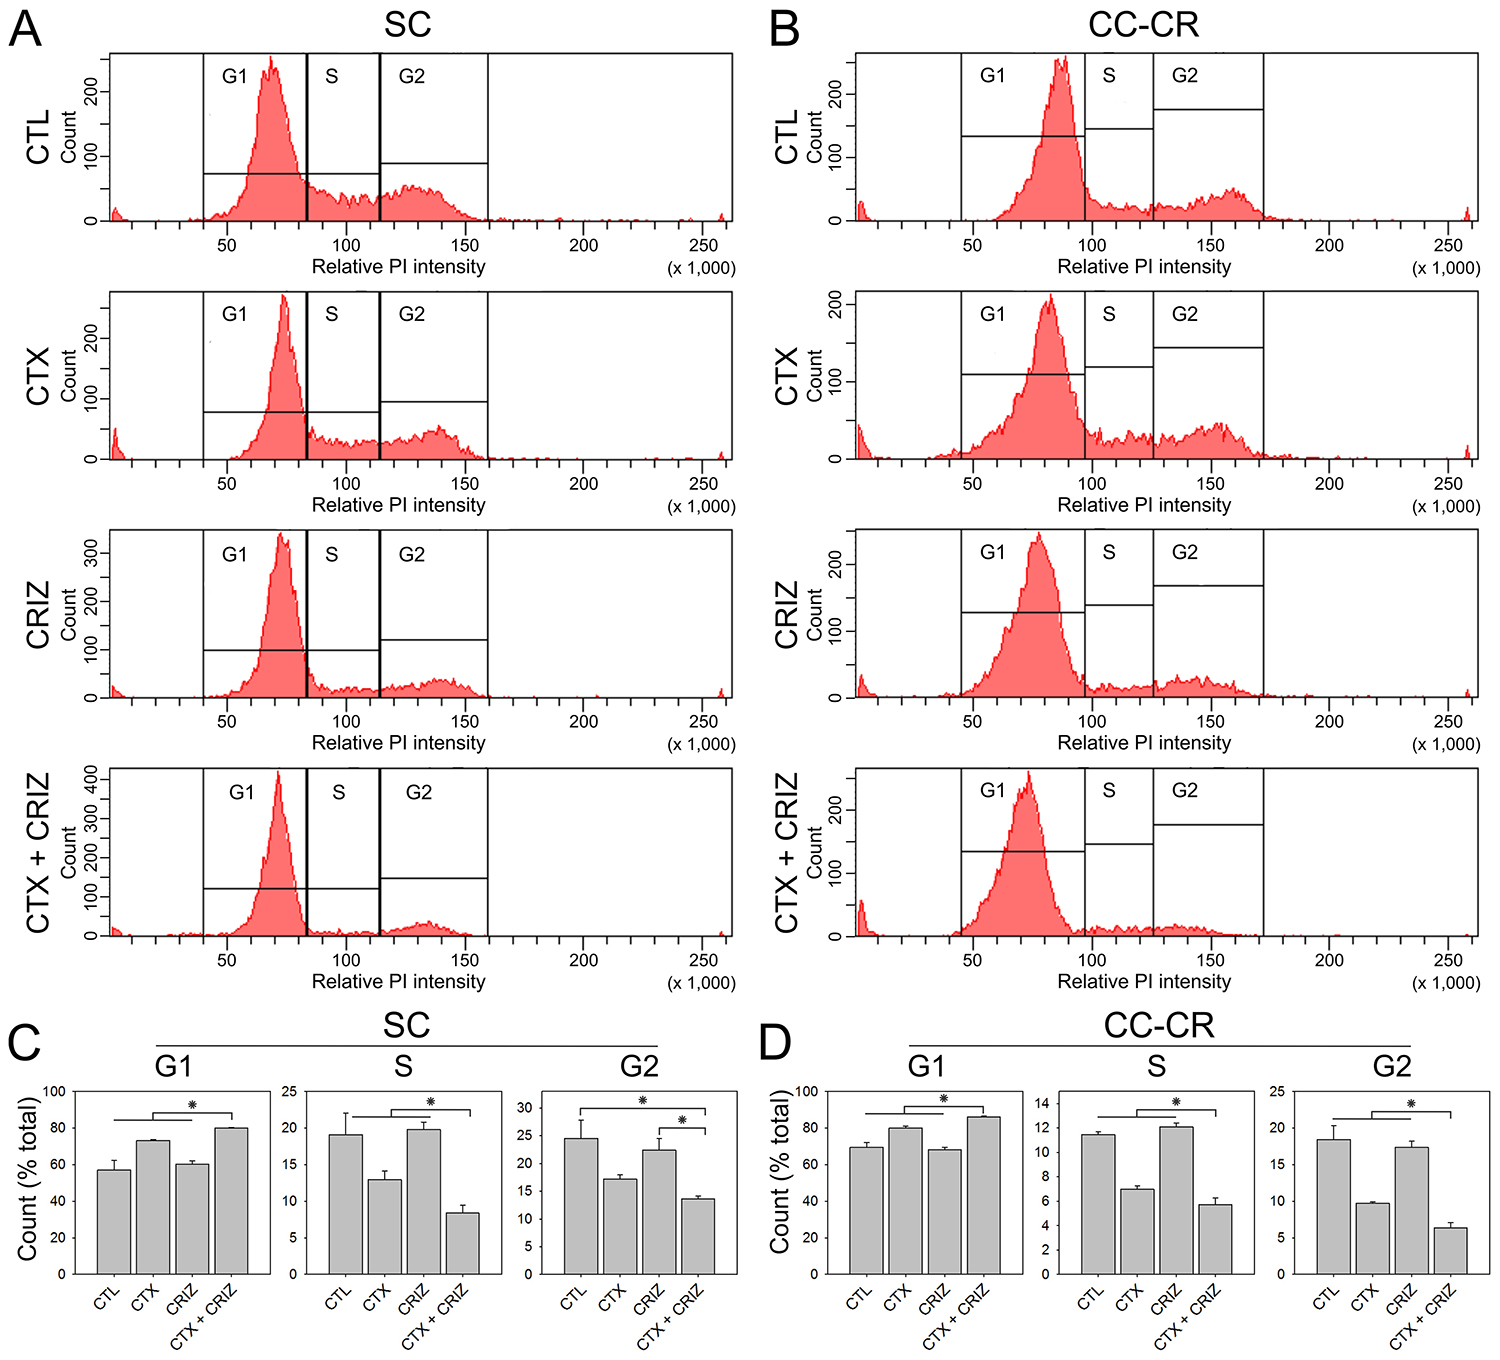 Induction of cell cycle arrest by multi-RTK inhibition in cetuximab-resistant CRC lines.